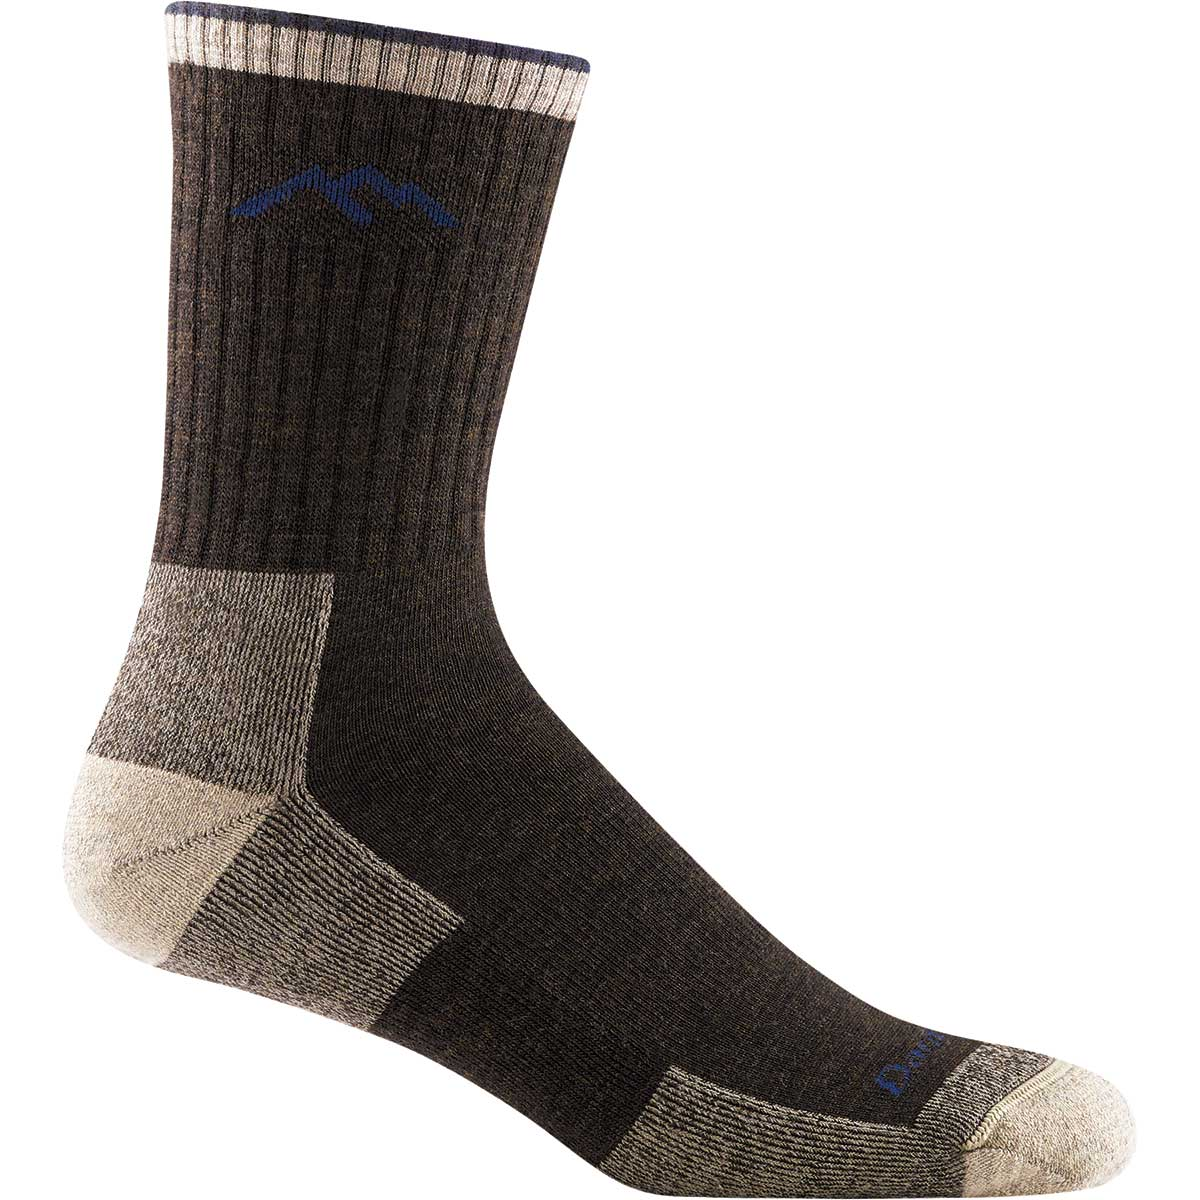 Darn Tough Men's Hiker Micro Crew Midweight Cushion Socks